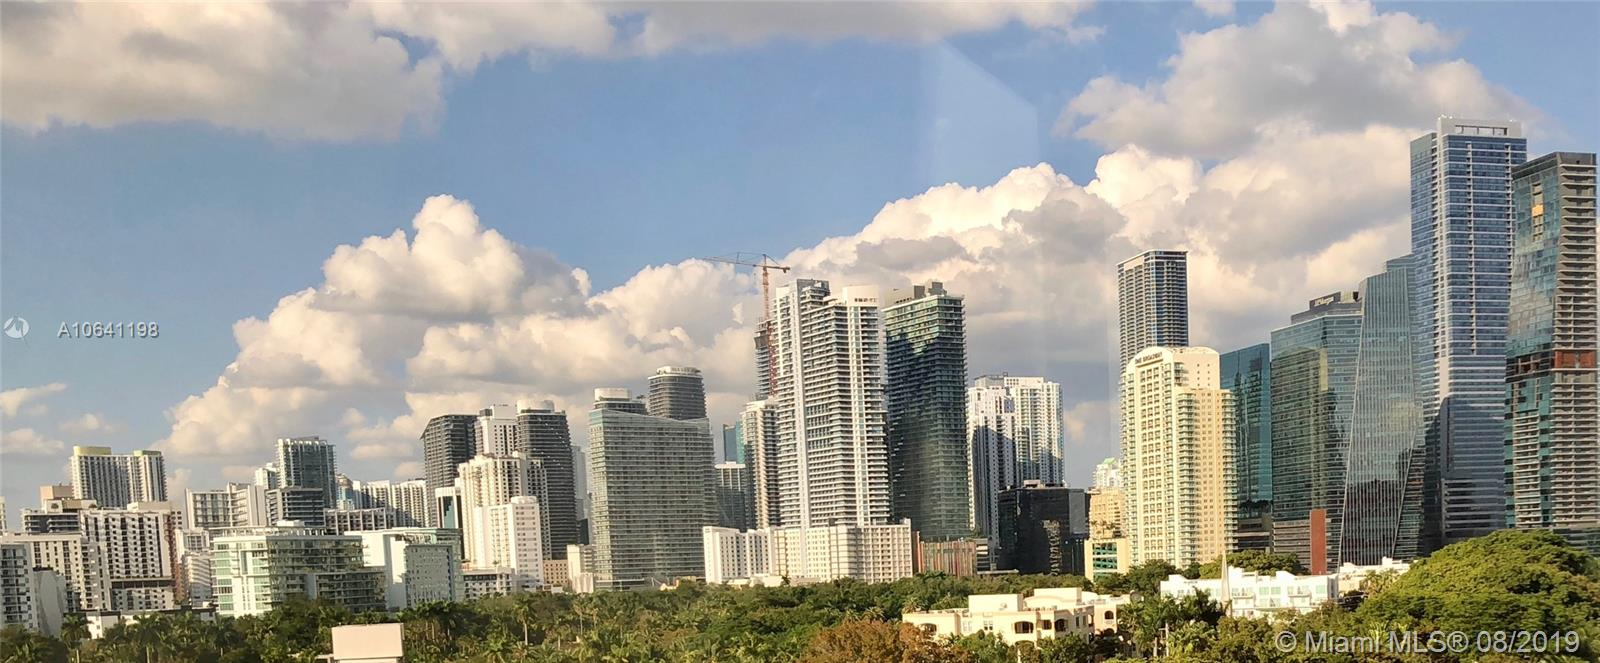 Atlantis on Brickell image #28